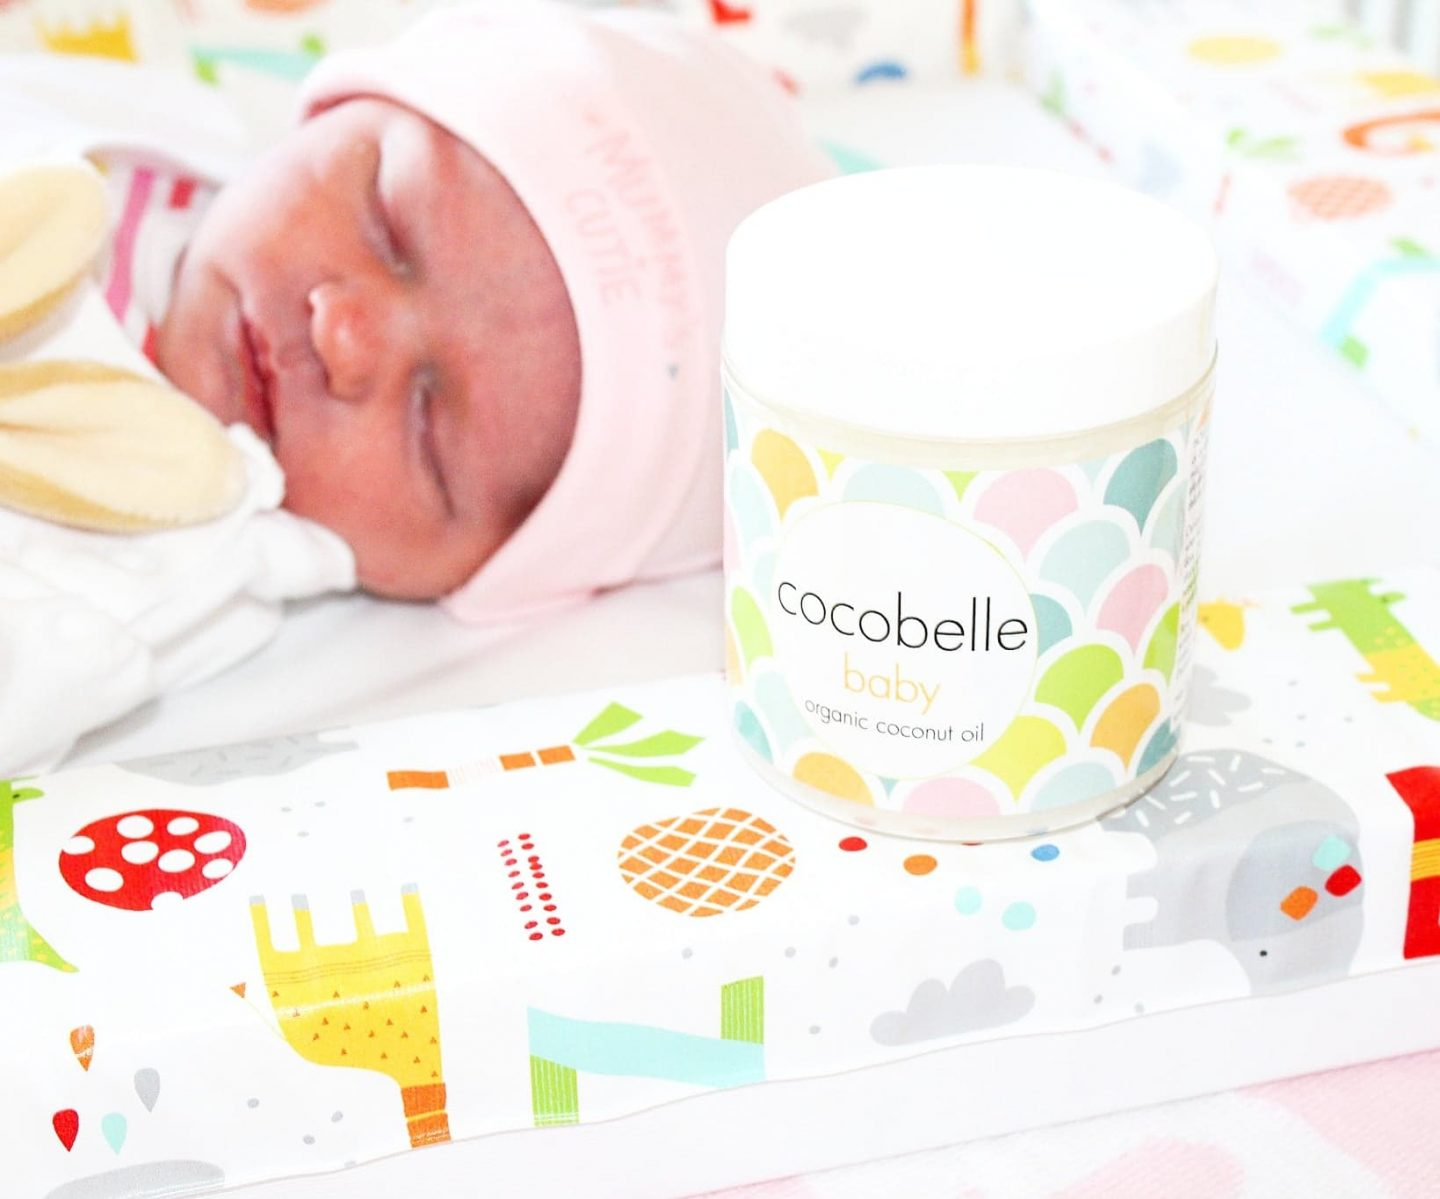 Cocobelle Baby | 100% Organic Coconut Oil for Babies